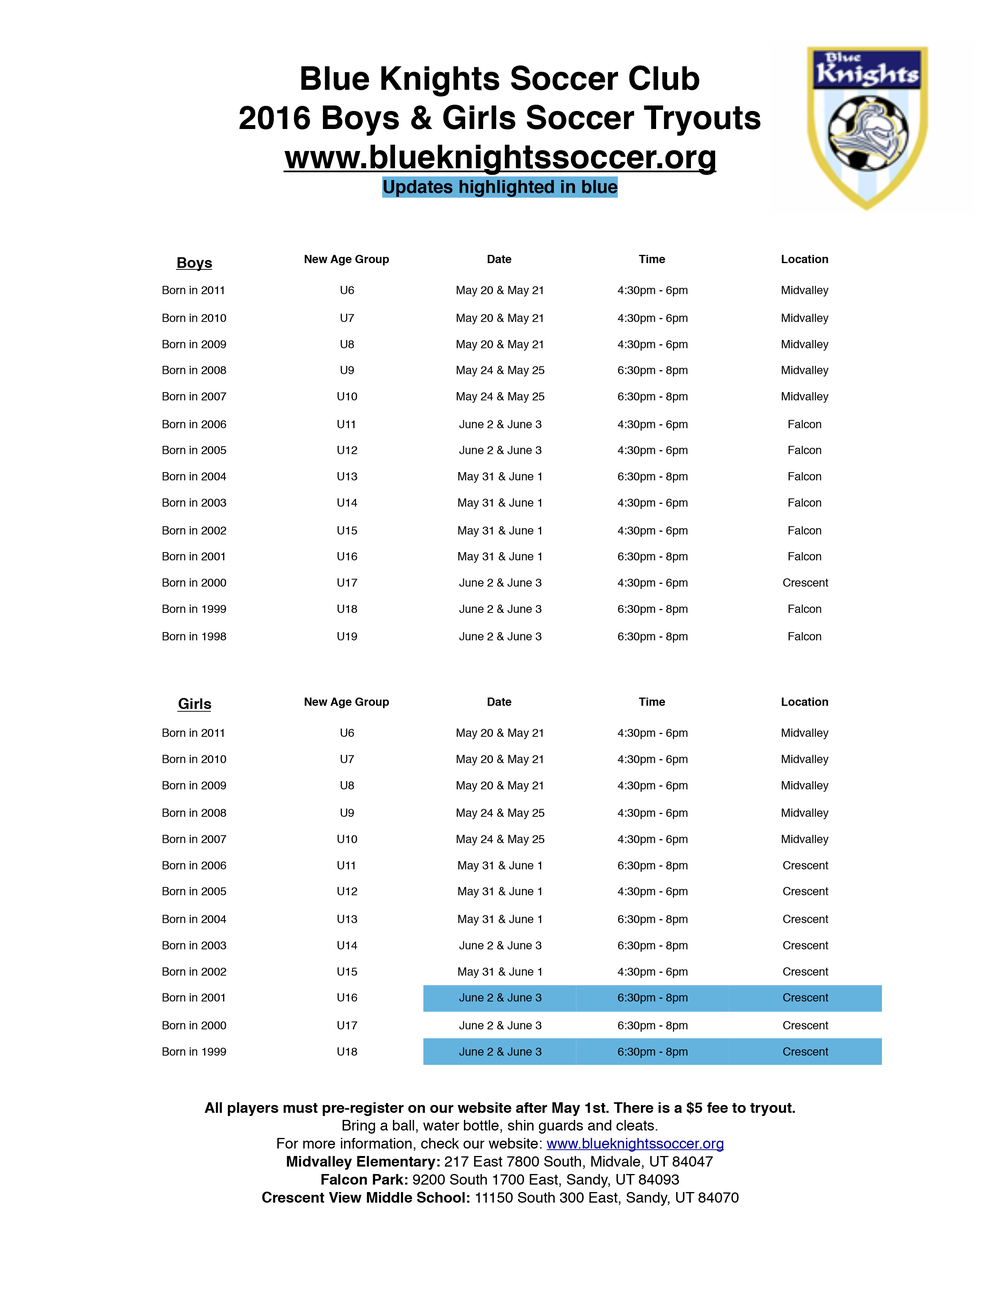 2016 BK Tryout Schedule (Update 2).jpg